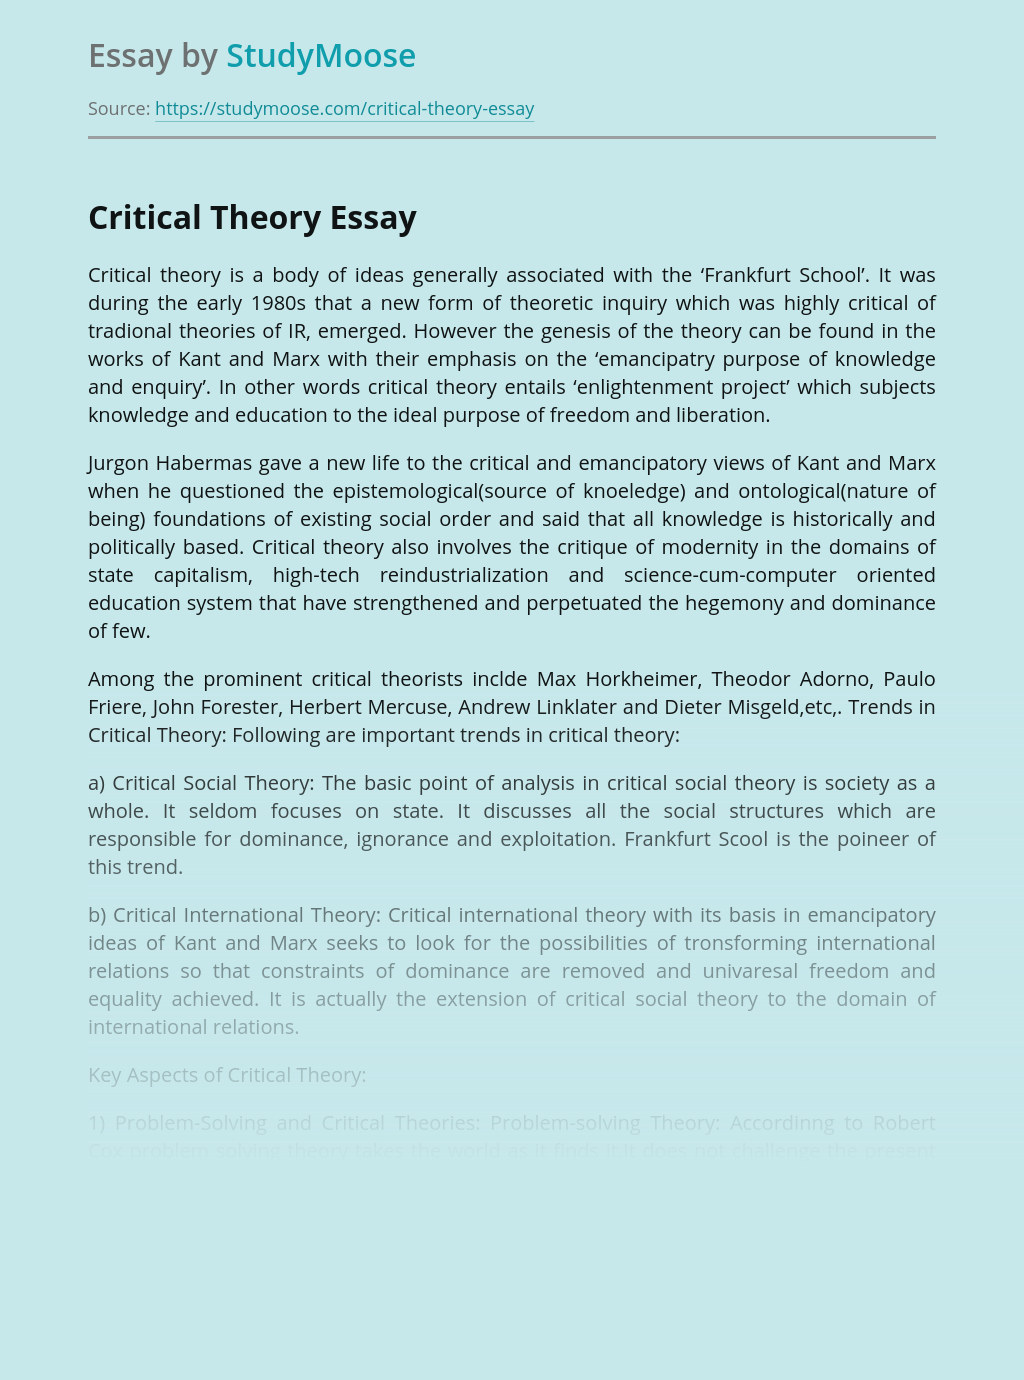 Trends in Critical Theory